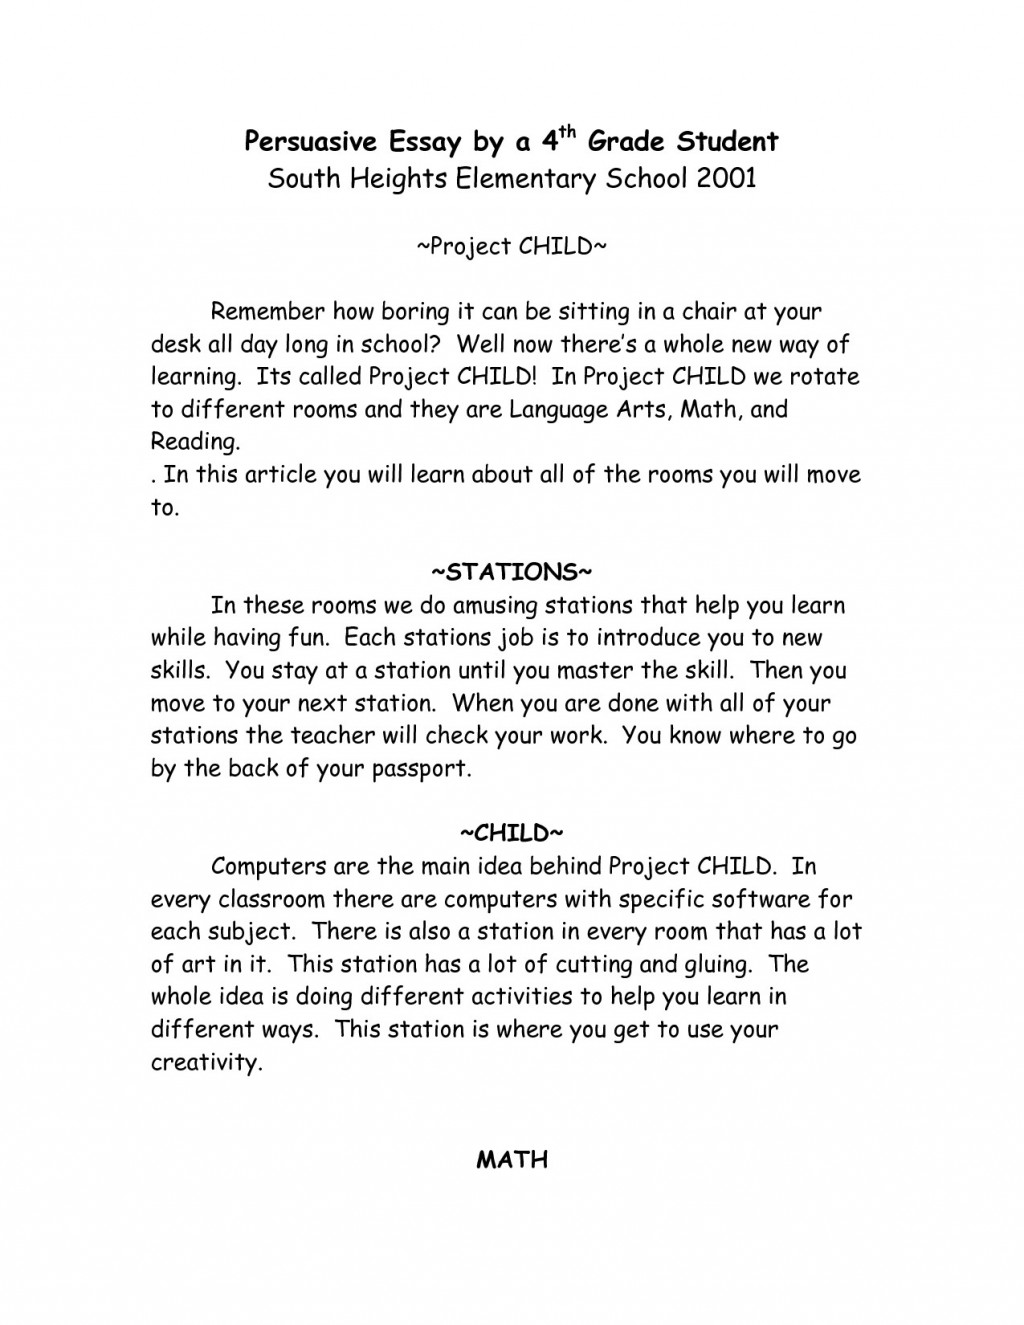 009 Persuasive Essays For Elementary Students Topics Essay How To Write An Opinion 4th Grade Letter Example Best Incredible Narrative Expository Large